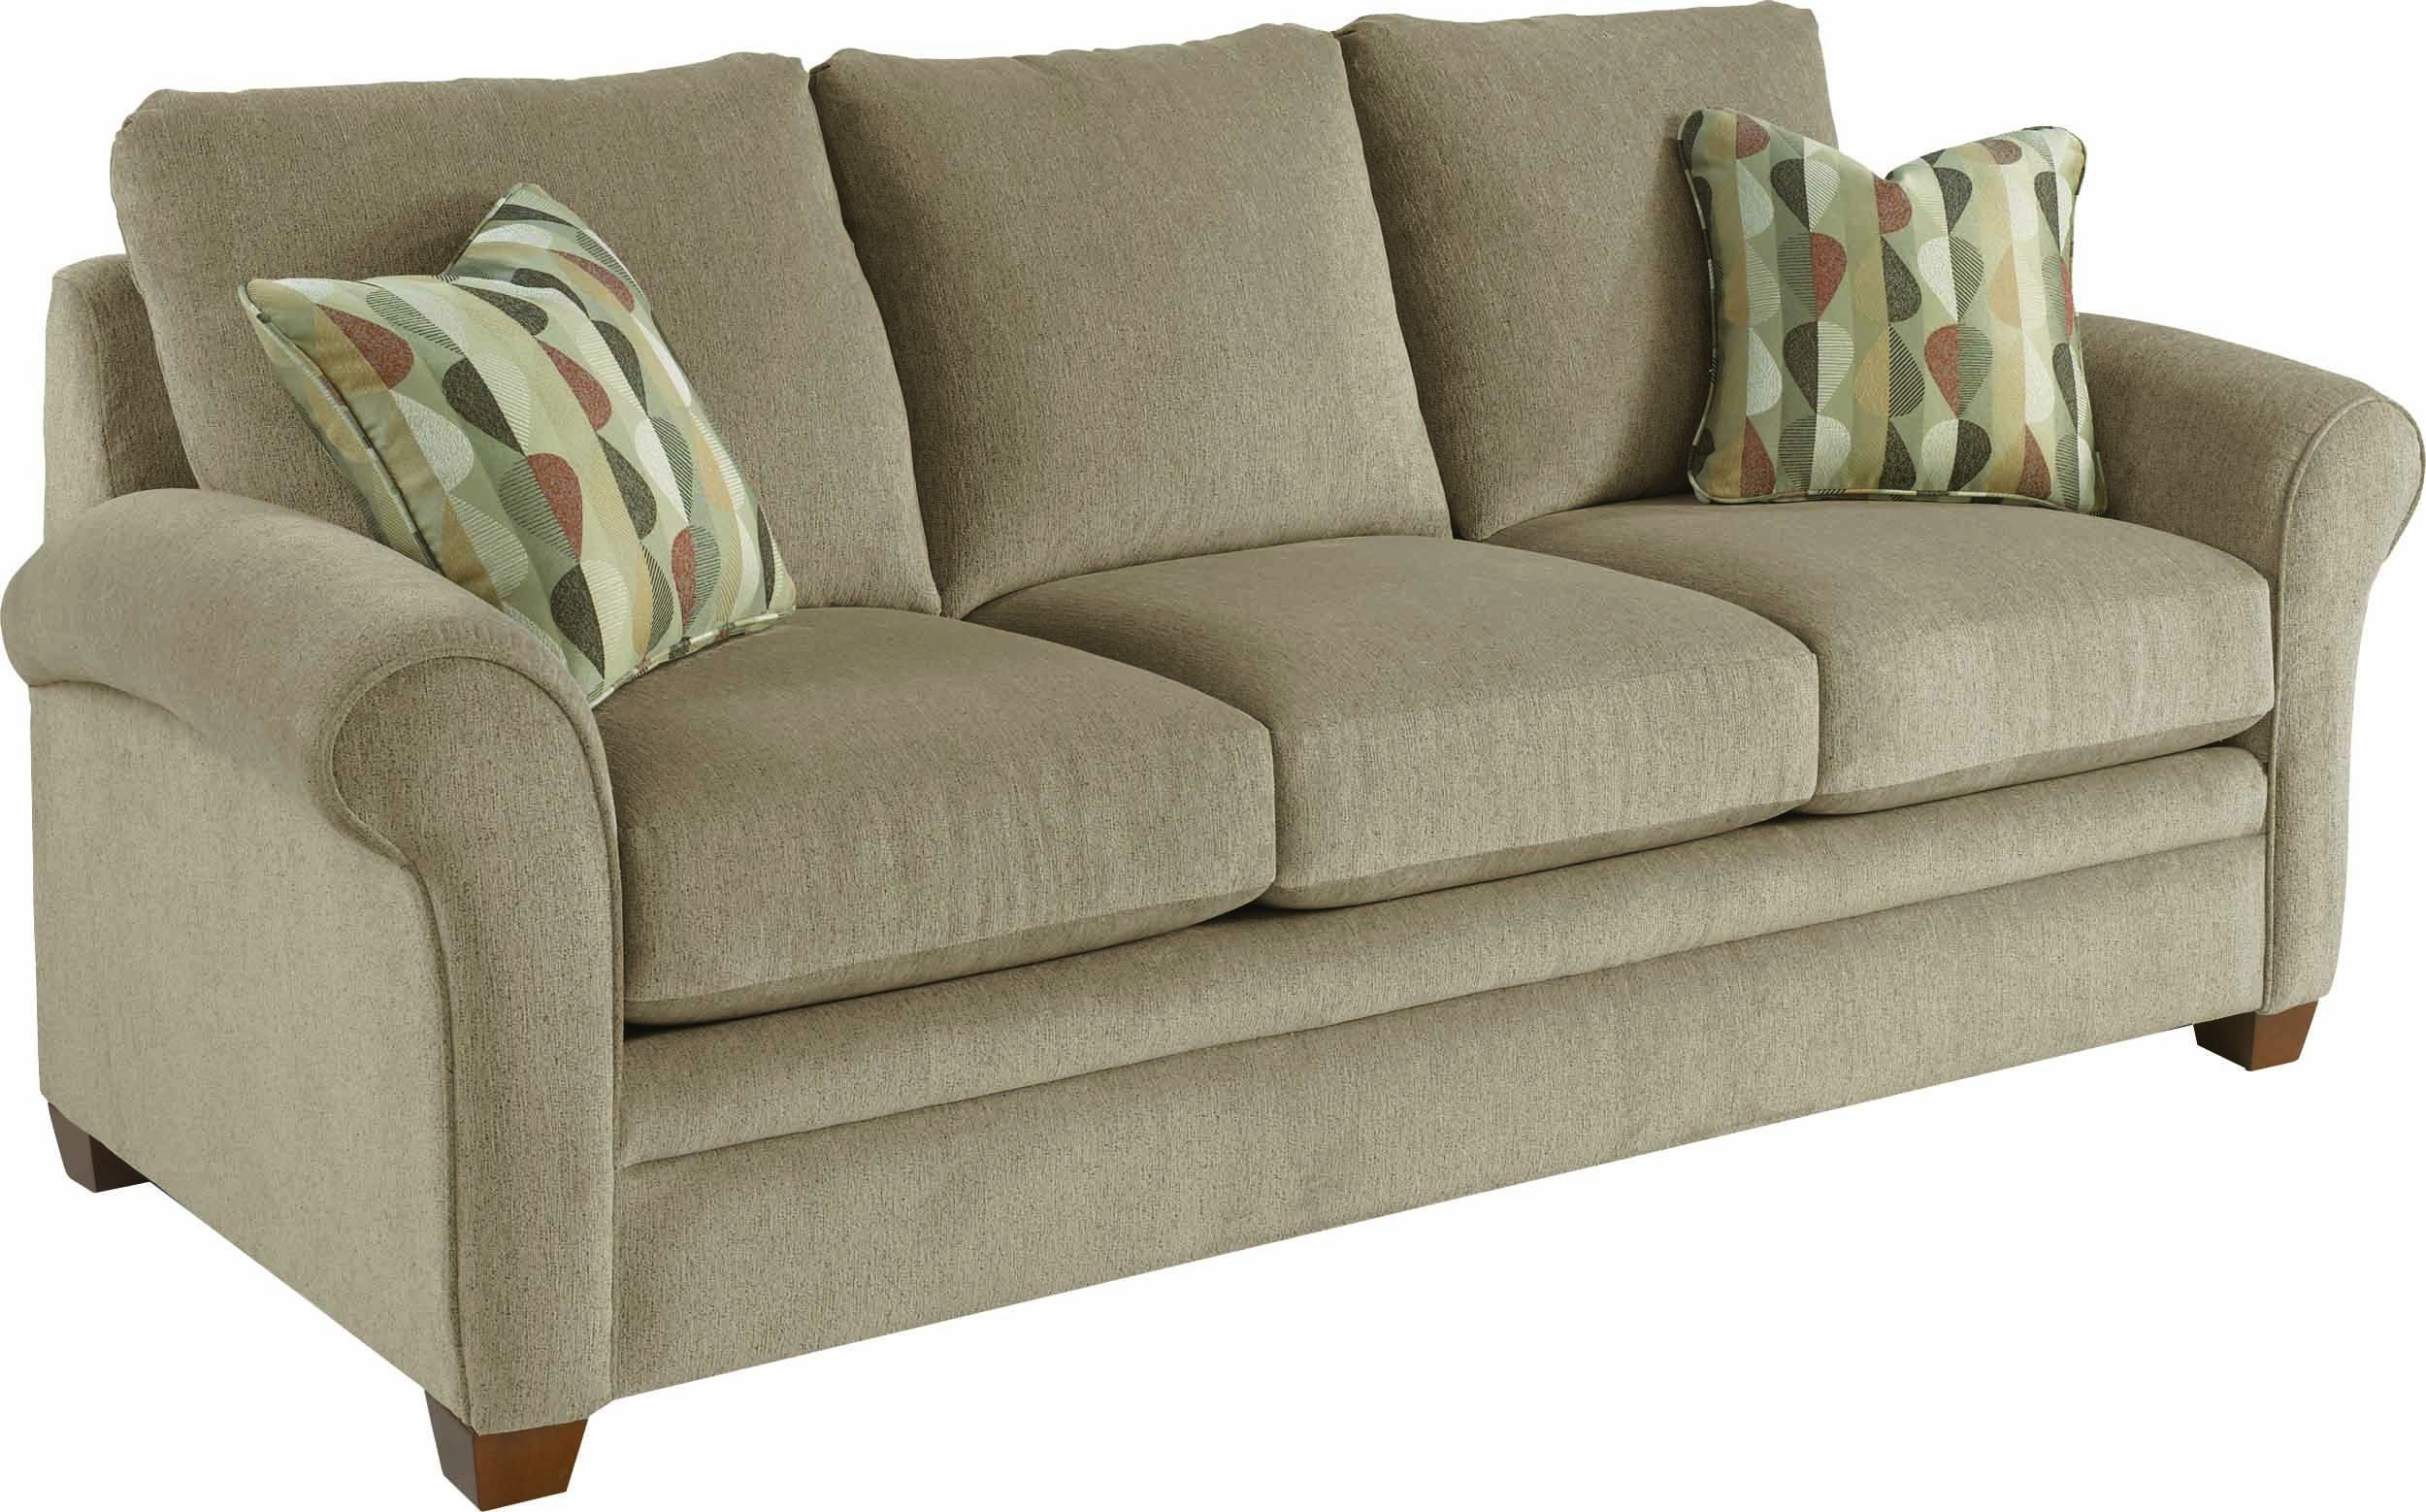 Lazy Boy Loveseat Sleeper Sofa Couches Are Extremely Por And With Good Reason